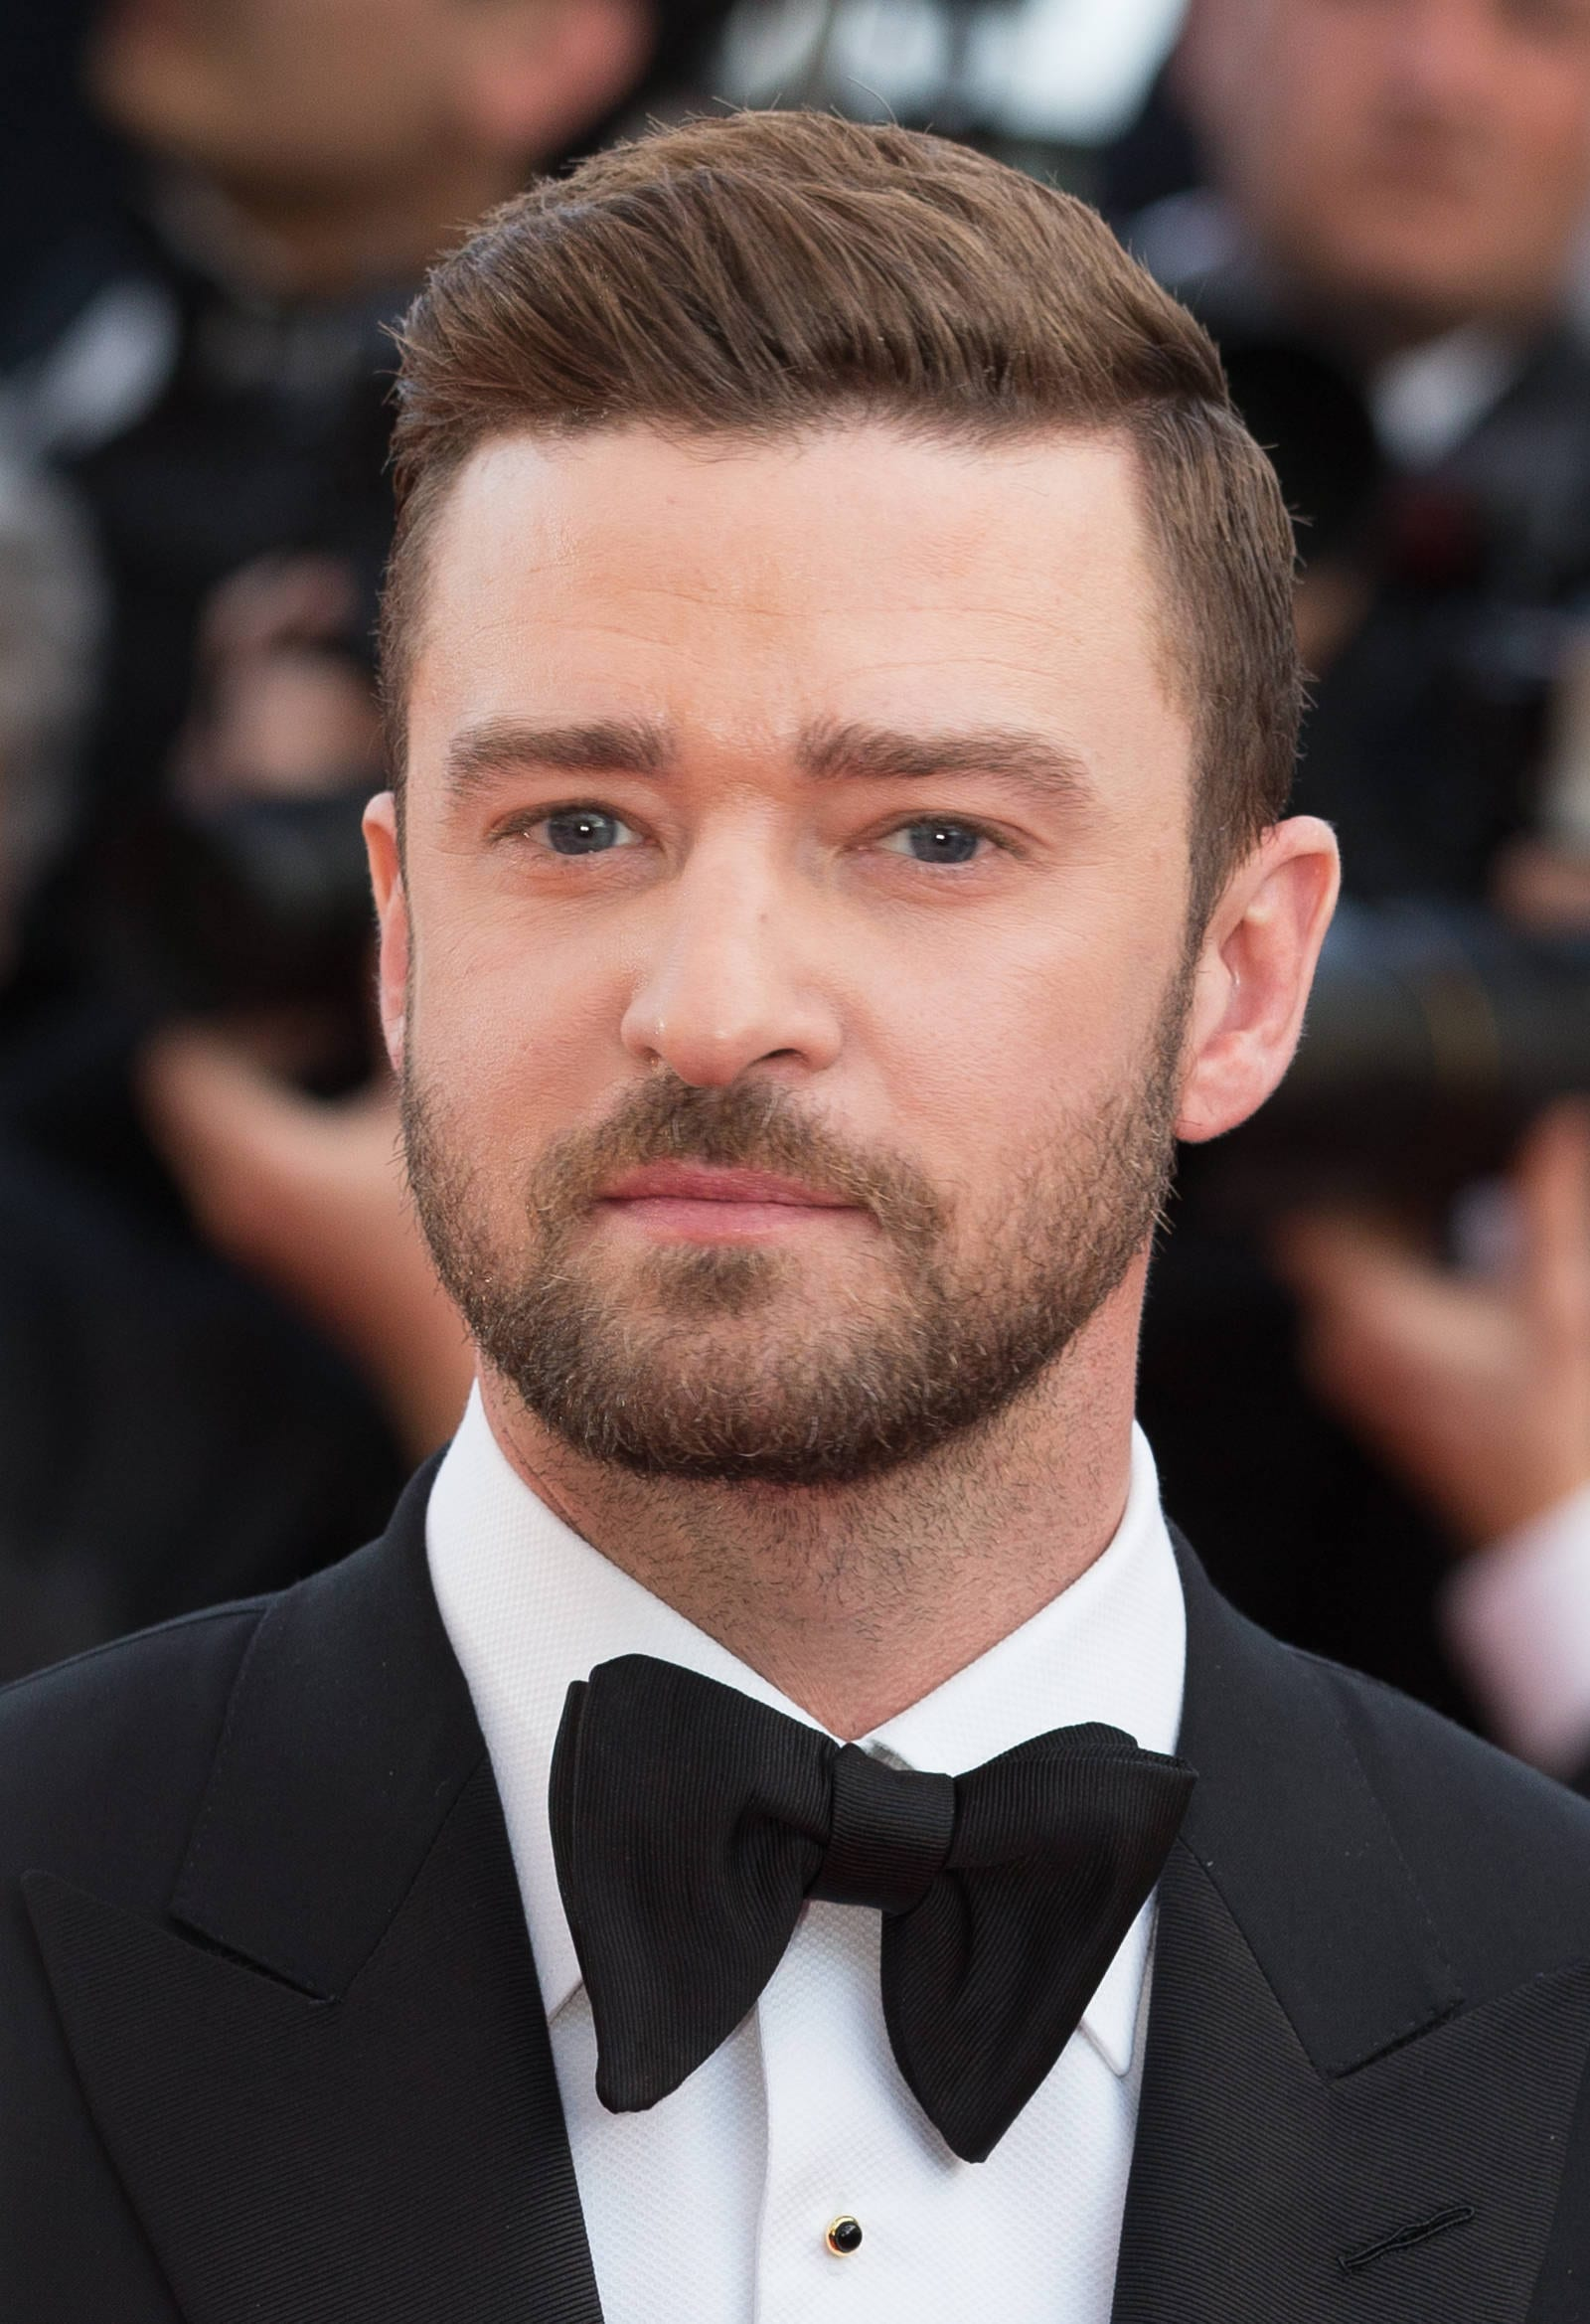 Justin Timberlake Side Part Hairstyle